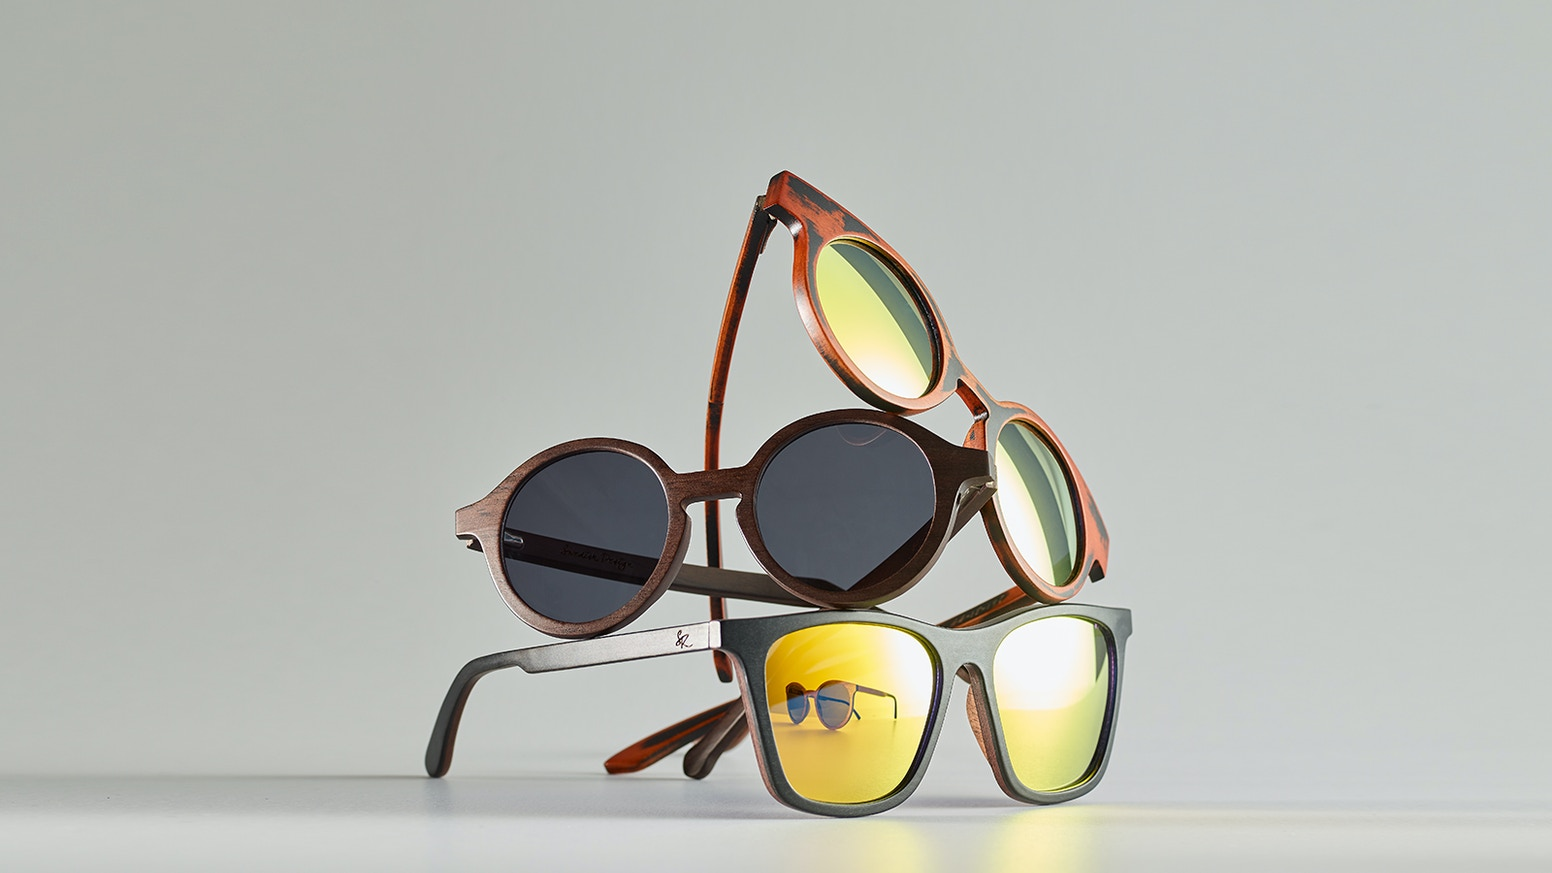 A new way of making wooden sunglasses. Our optical frames can be heated and bent like acetate glasses meaning a perfect fit every time.